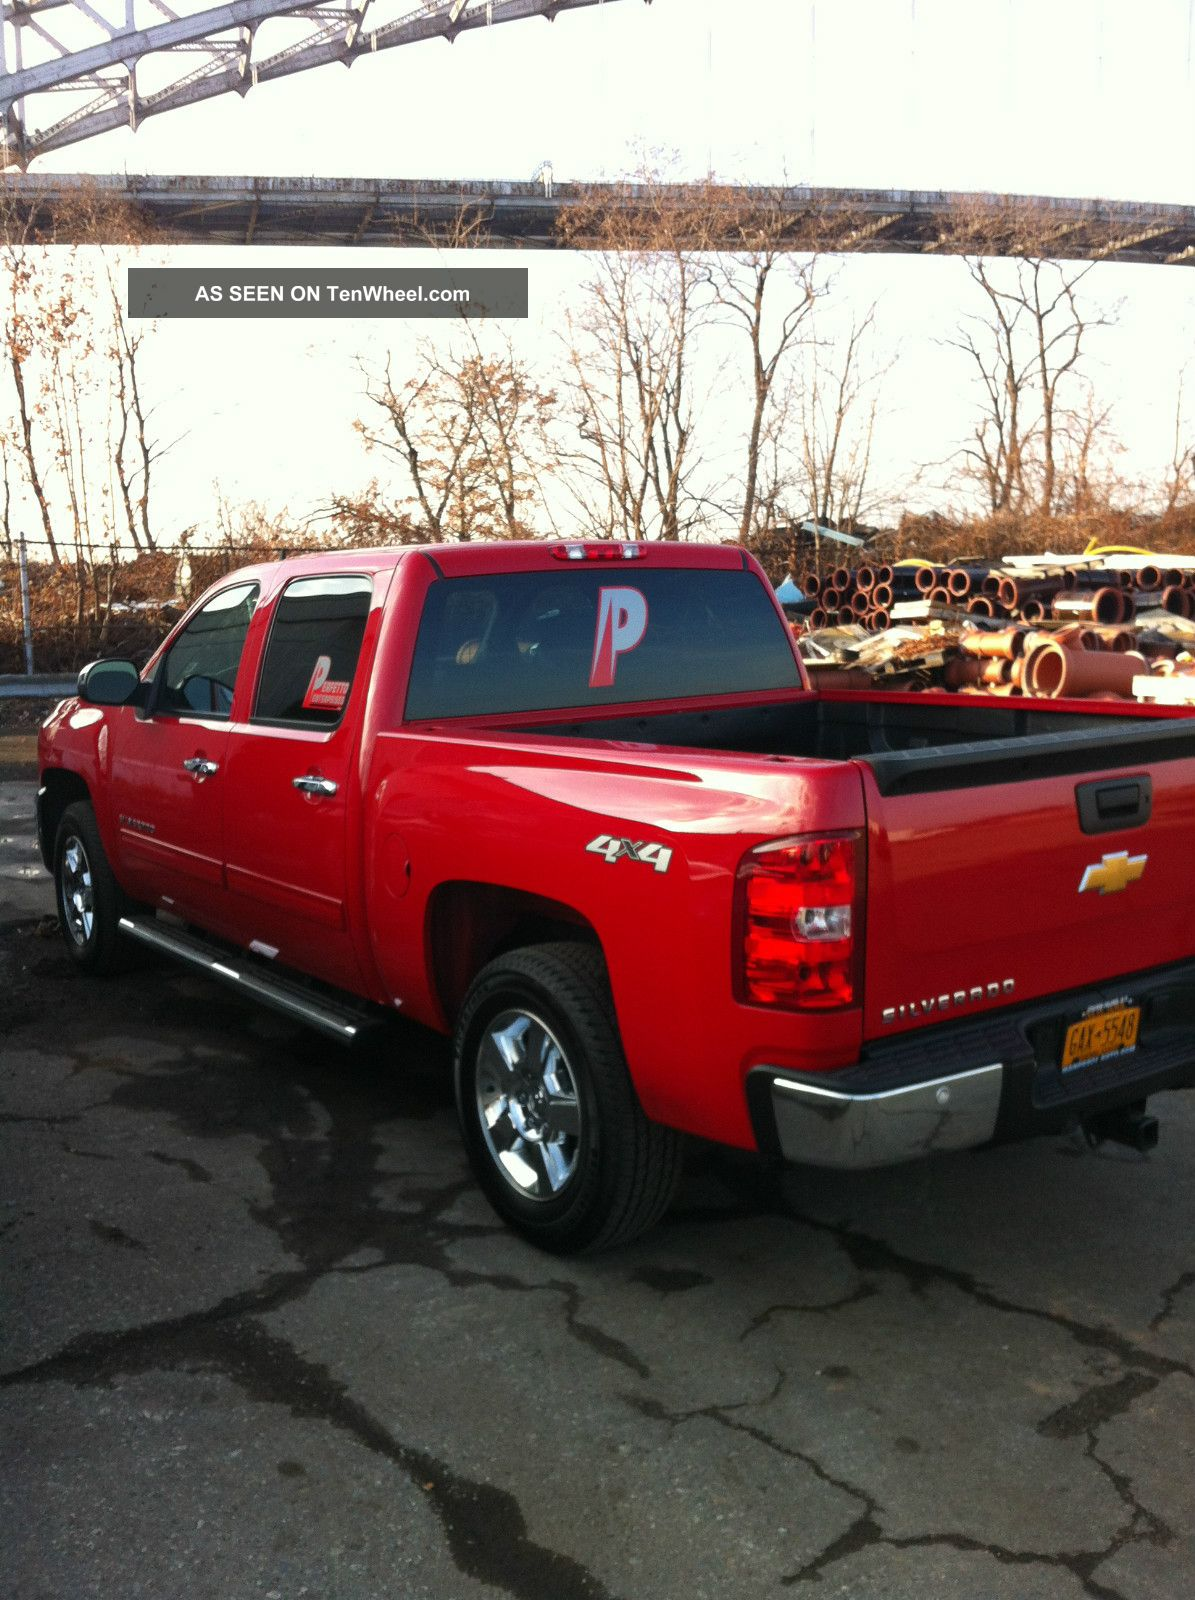 2012 chevrolet silverado 1500 lt crew cab pickup 4 door 4 8l. Black Bedroom Furniture Sets. Home Design Ideas